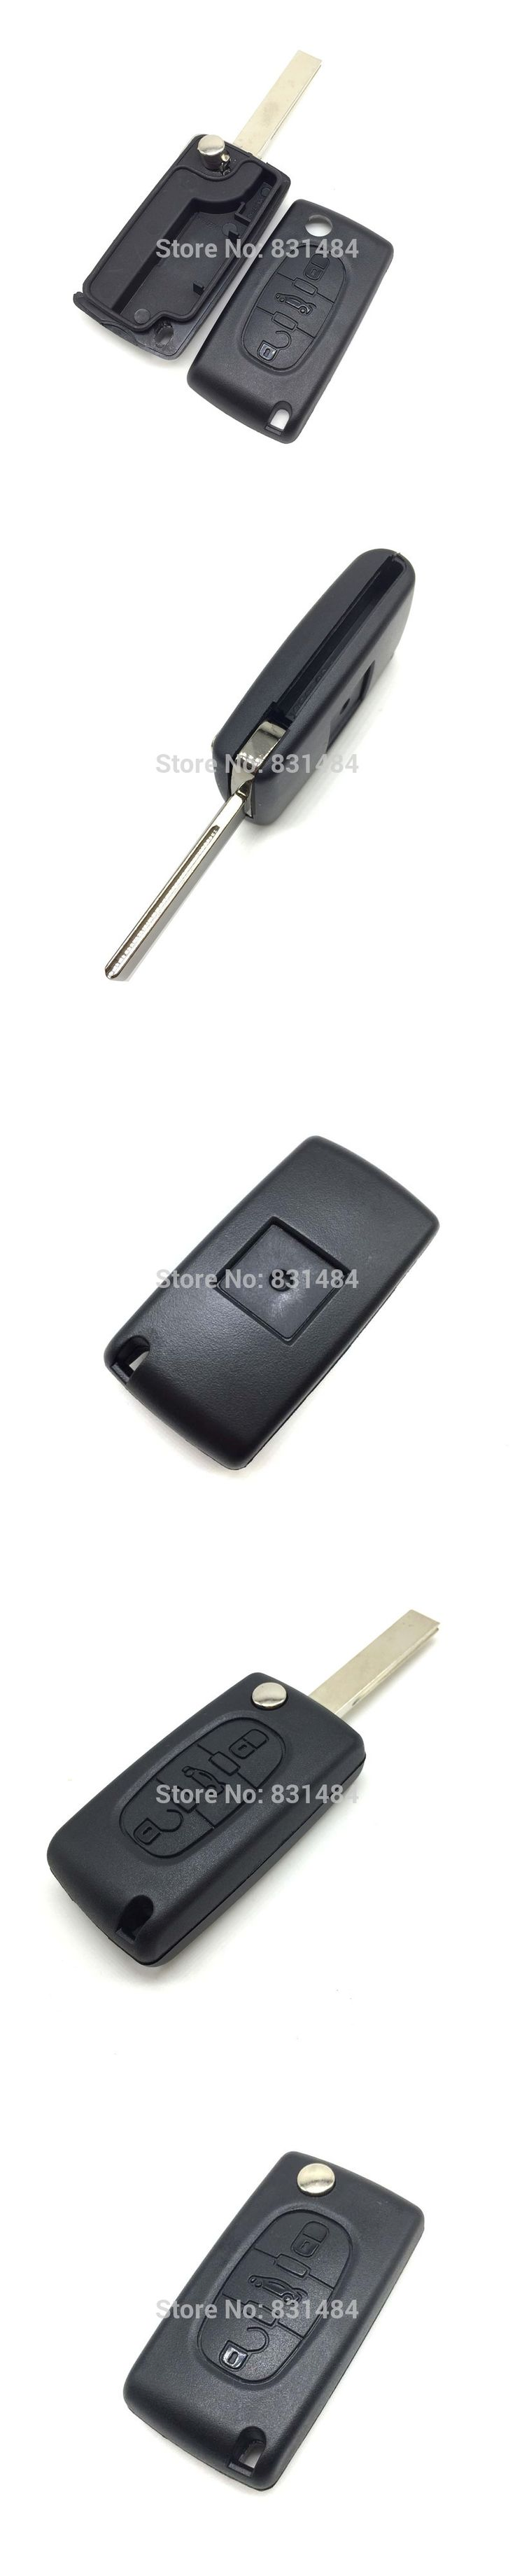 3 buttons flip key case shell with trunk button no battery place CE0523 for Citroen C2 C3 C4 C5 C6 XSARA PICASSO